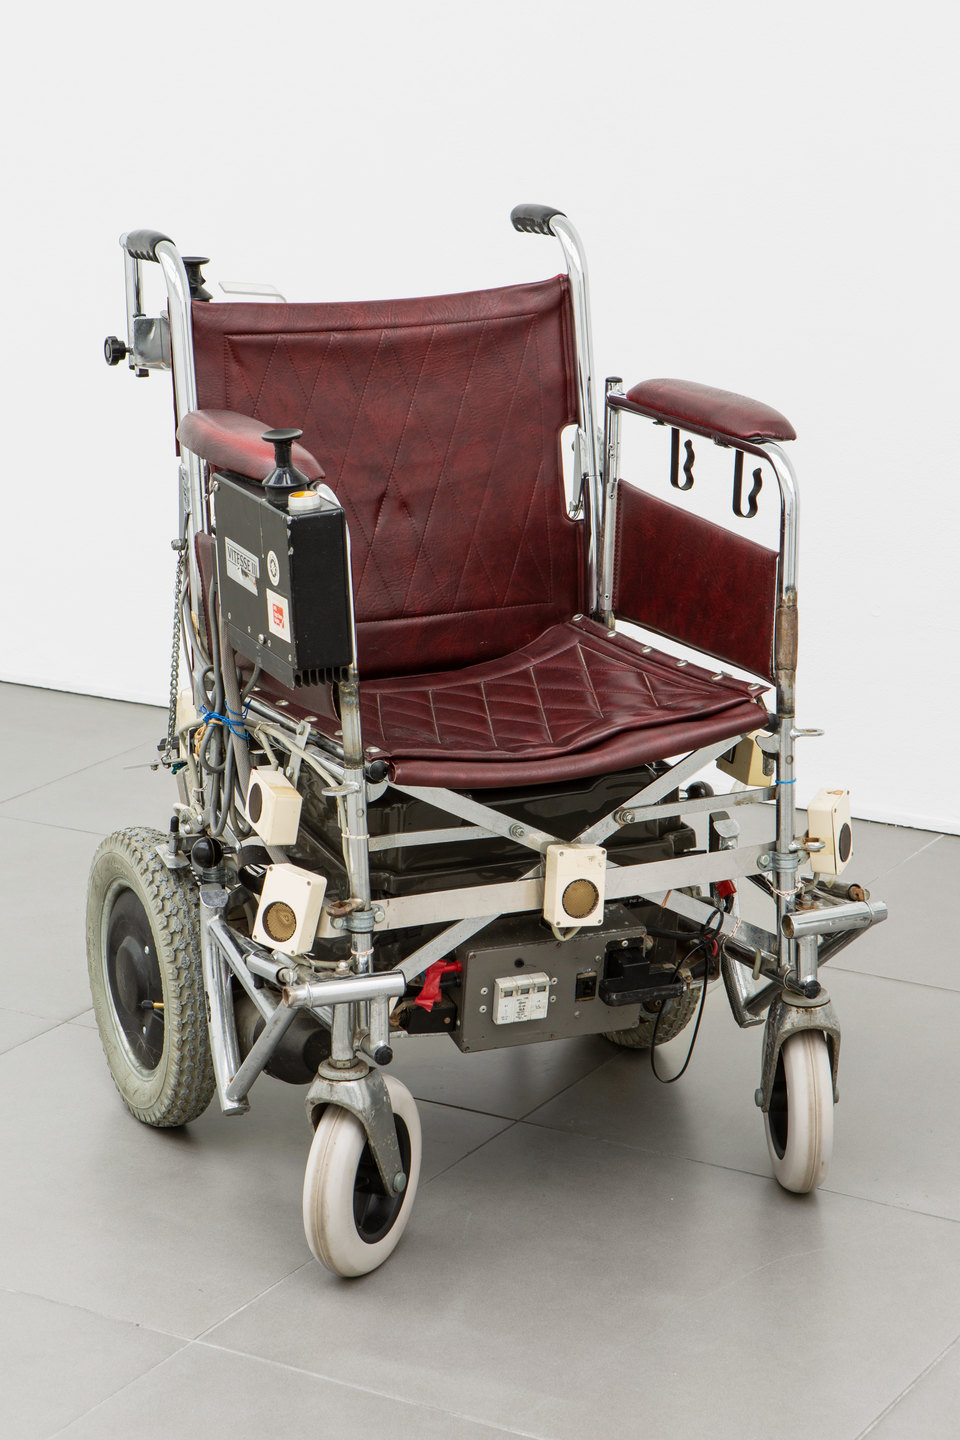 Donald Rodney, 'Psalms', 1997, Wheelchair, computer, proximity sensors, 95 x 65 x 70cm, Civic Duty, 2019, Cell Project Space